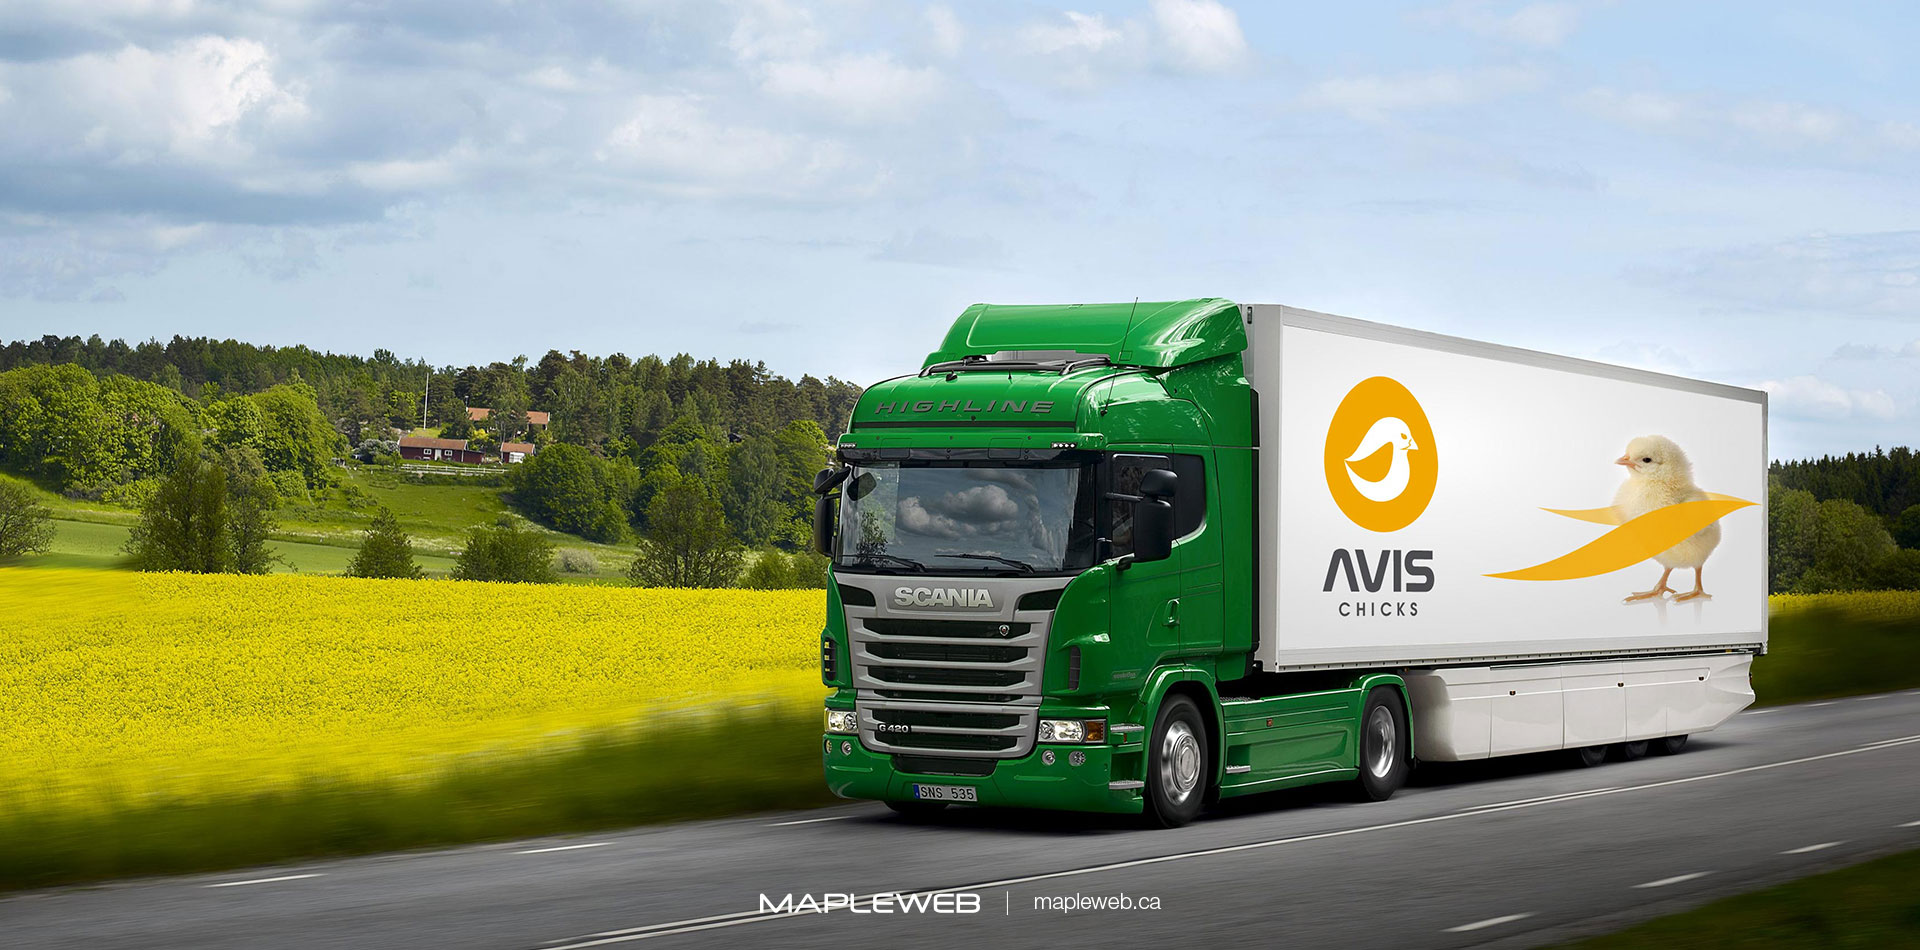 avis-chicks-Vancouver-brand-design-Vancouver-graphic-design-by-mapleweb-canada-green-truck-with-greenery-scene